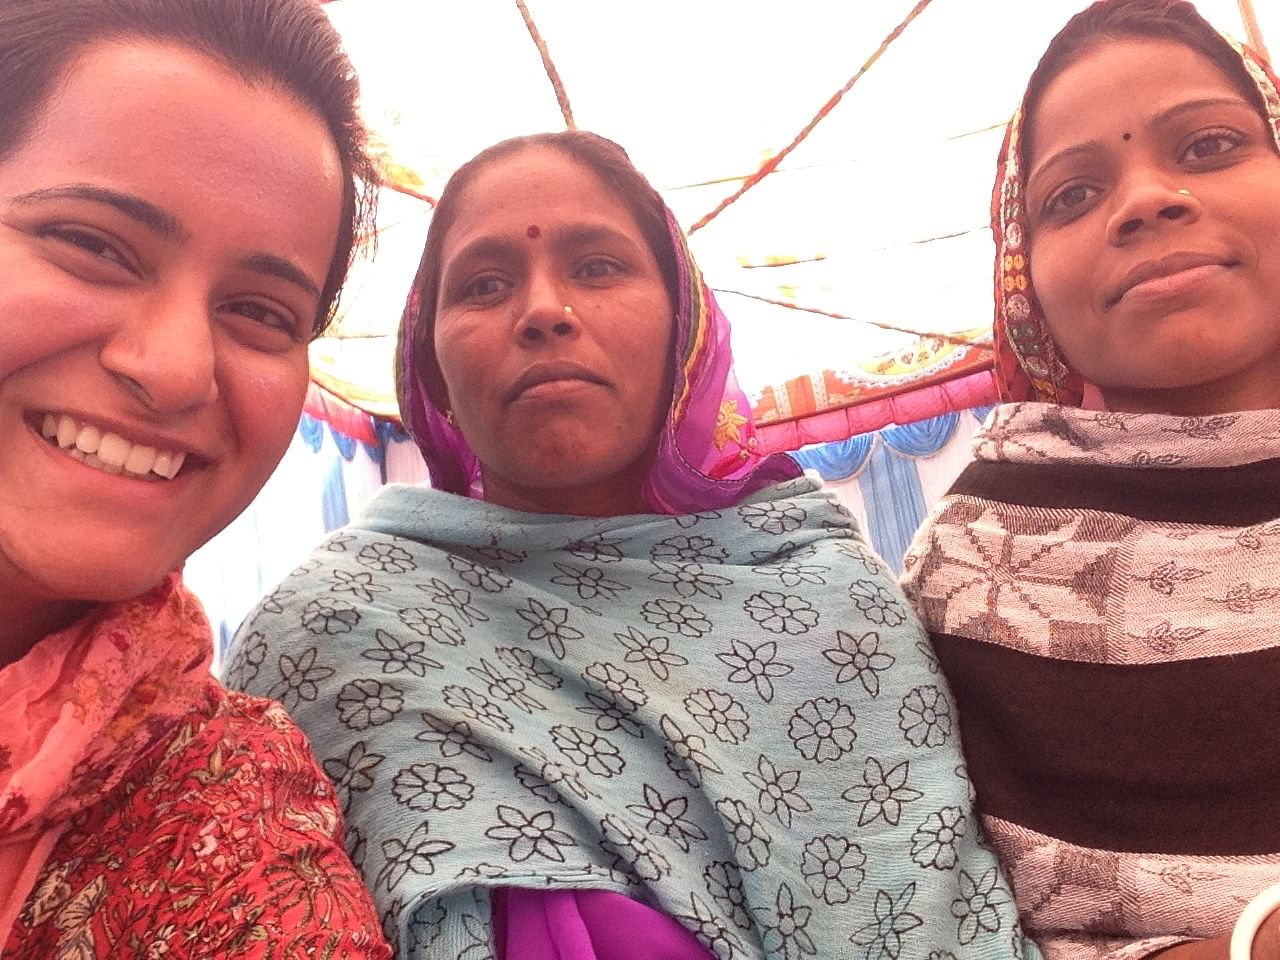 Nupur is working with the rural community to make biomass briquettes.